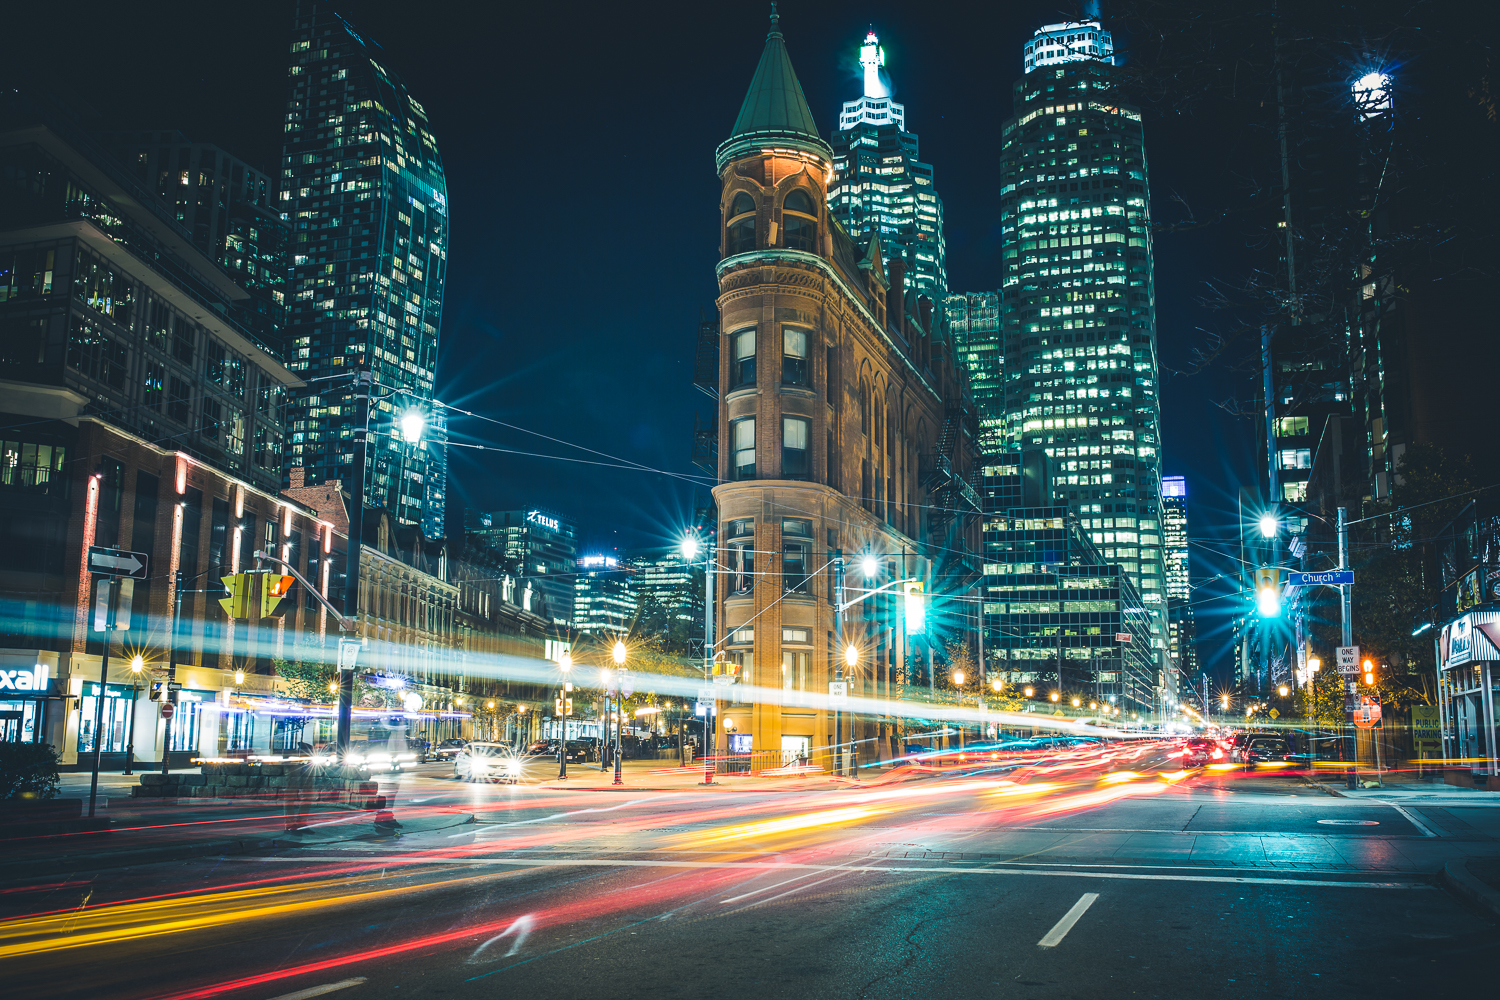 A night shot of the historic Gooderham Building in Toronto, Ontario, Canada, by Ryan Bolton.